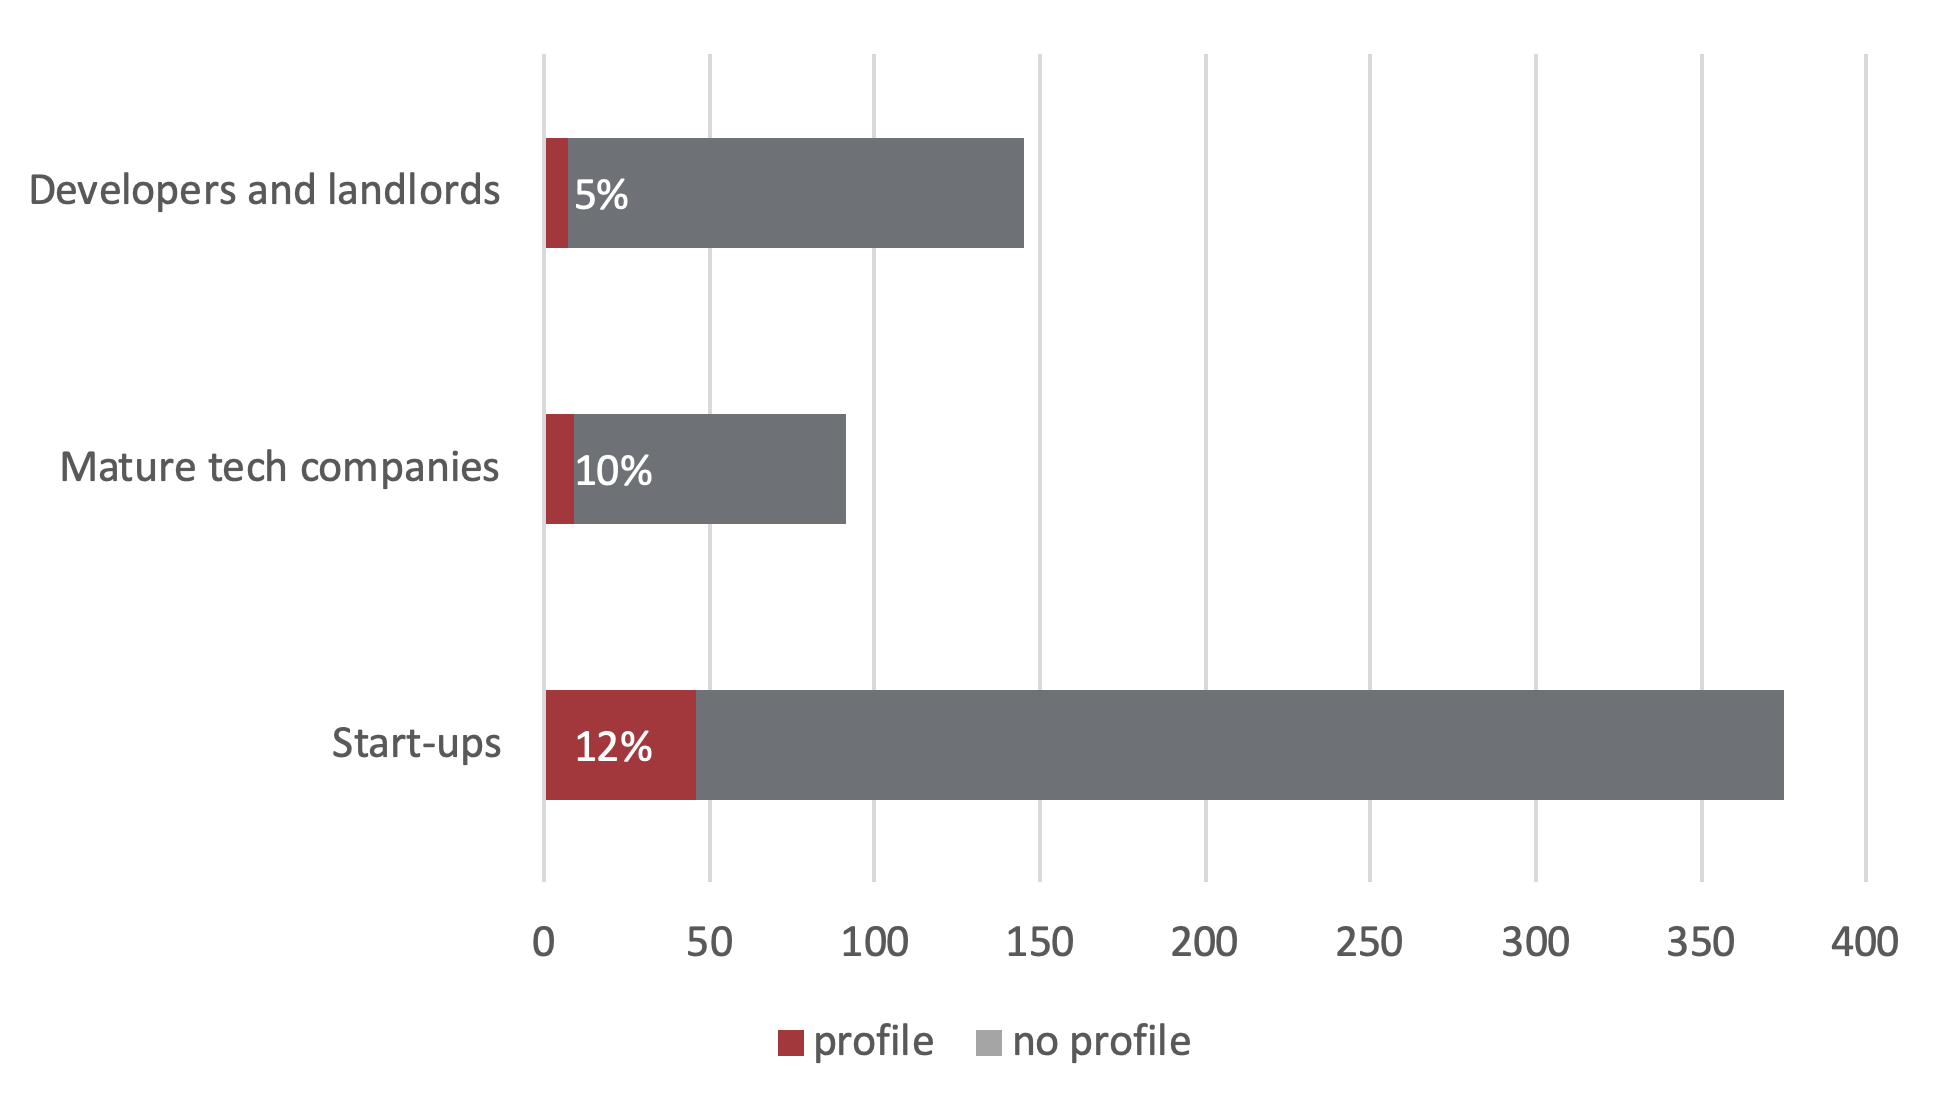 Proportion of participants with full profiles on the official MIPIM PropTech Europe web app